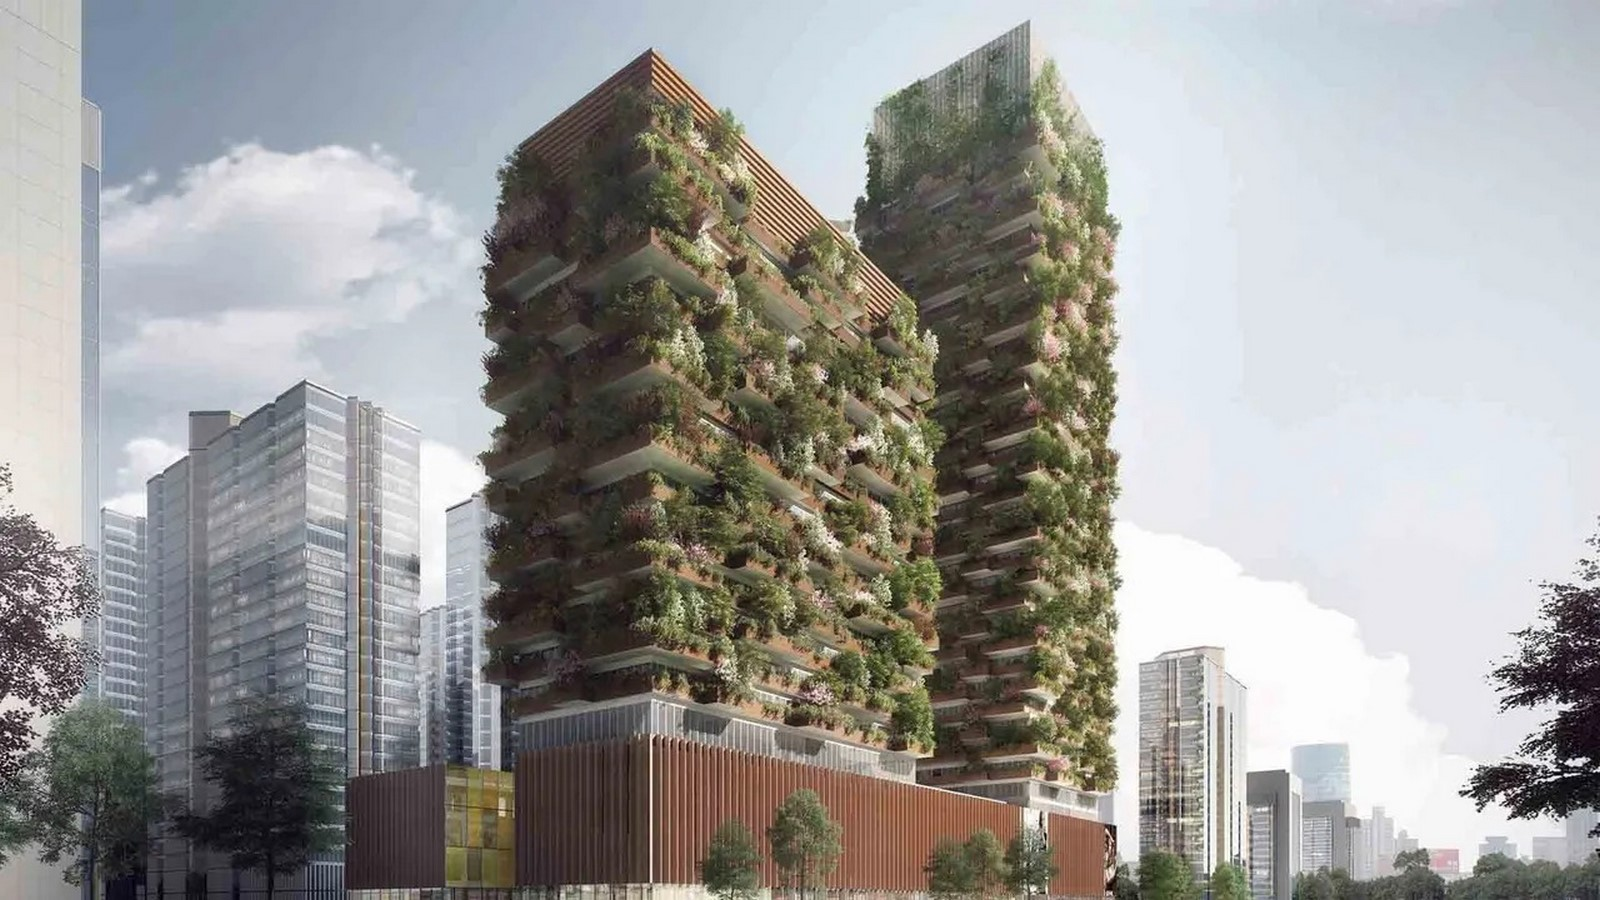 Architecture of China: Is it really Sustainable? - Sheet3